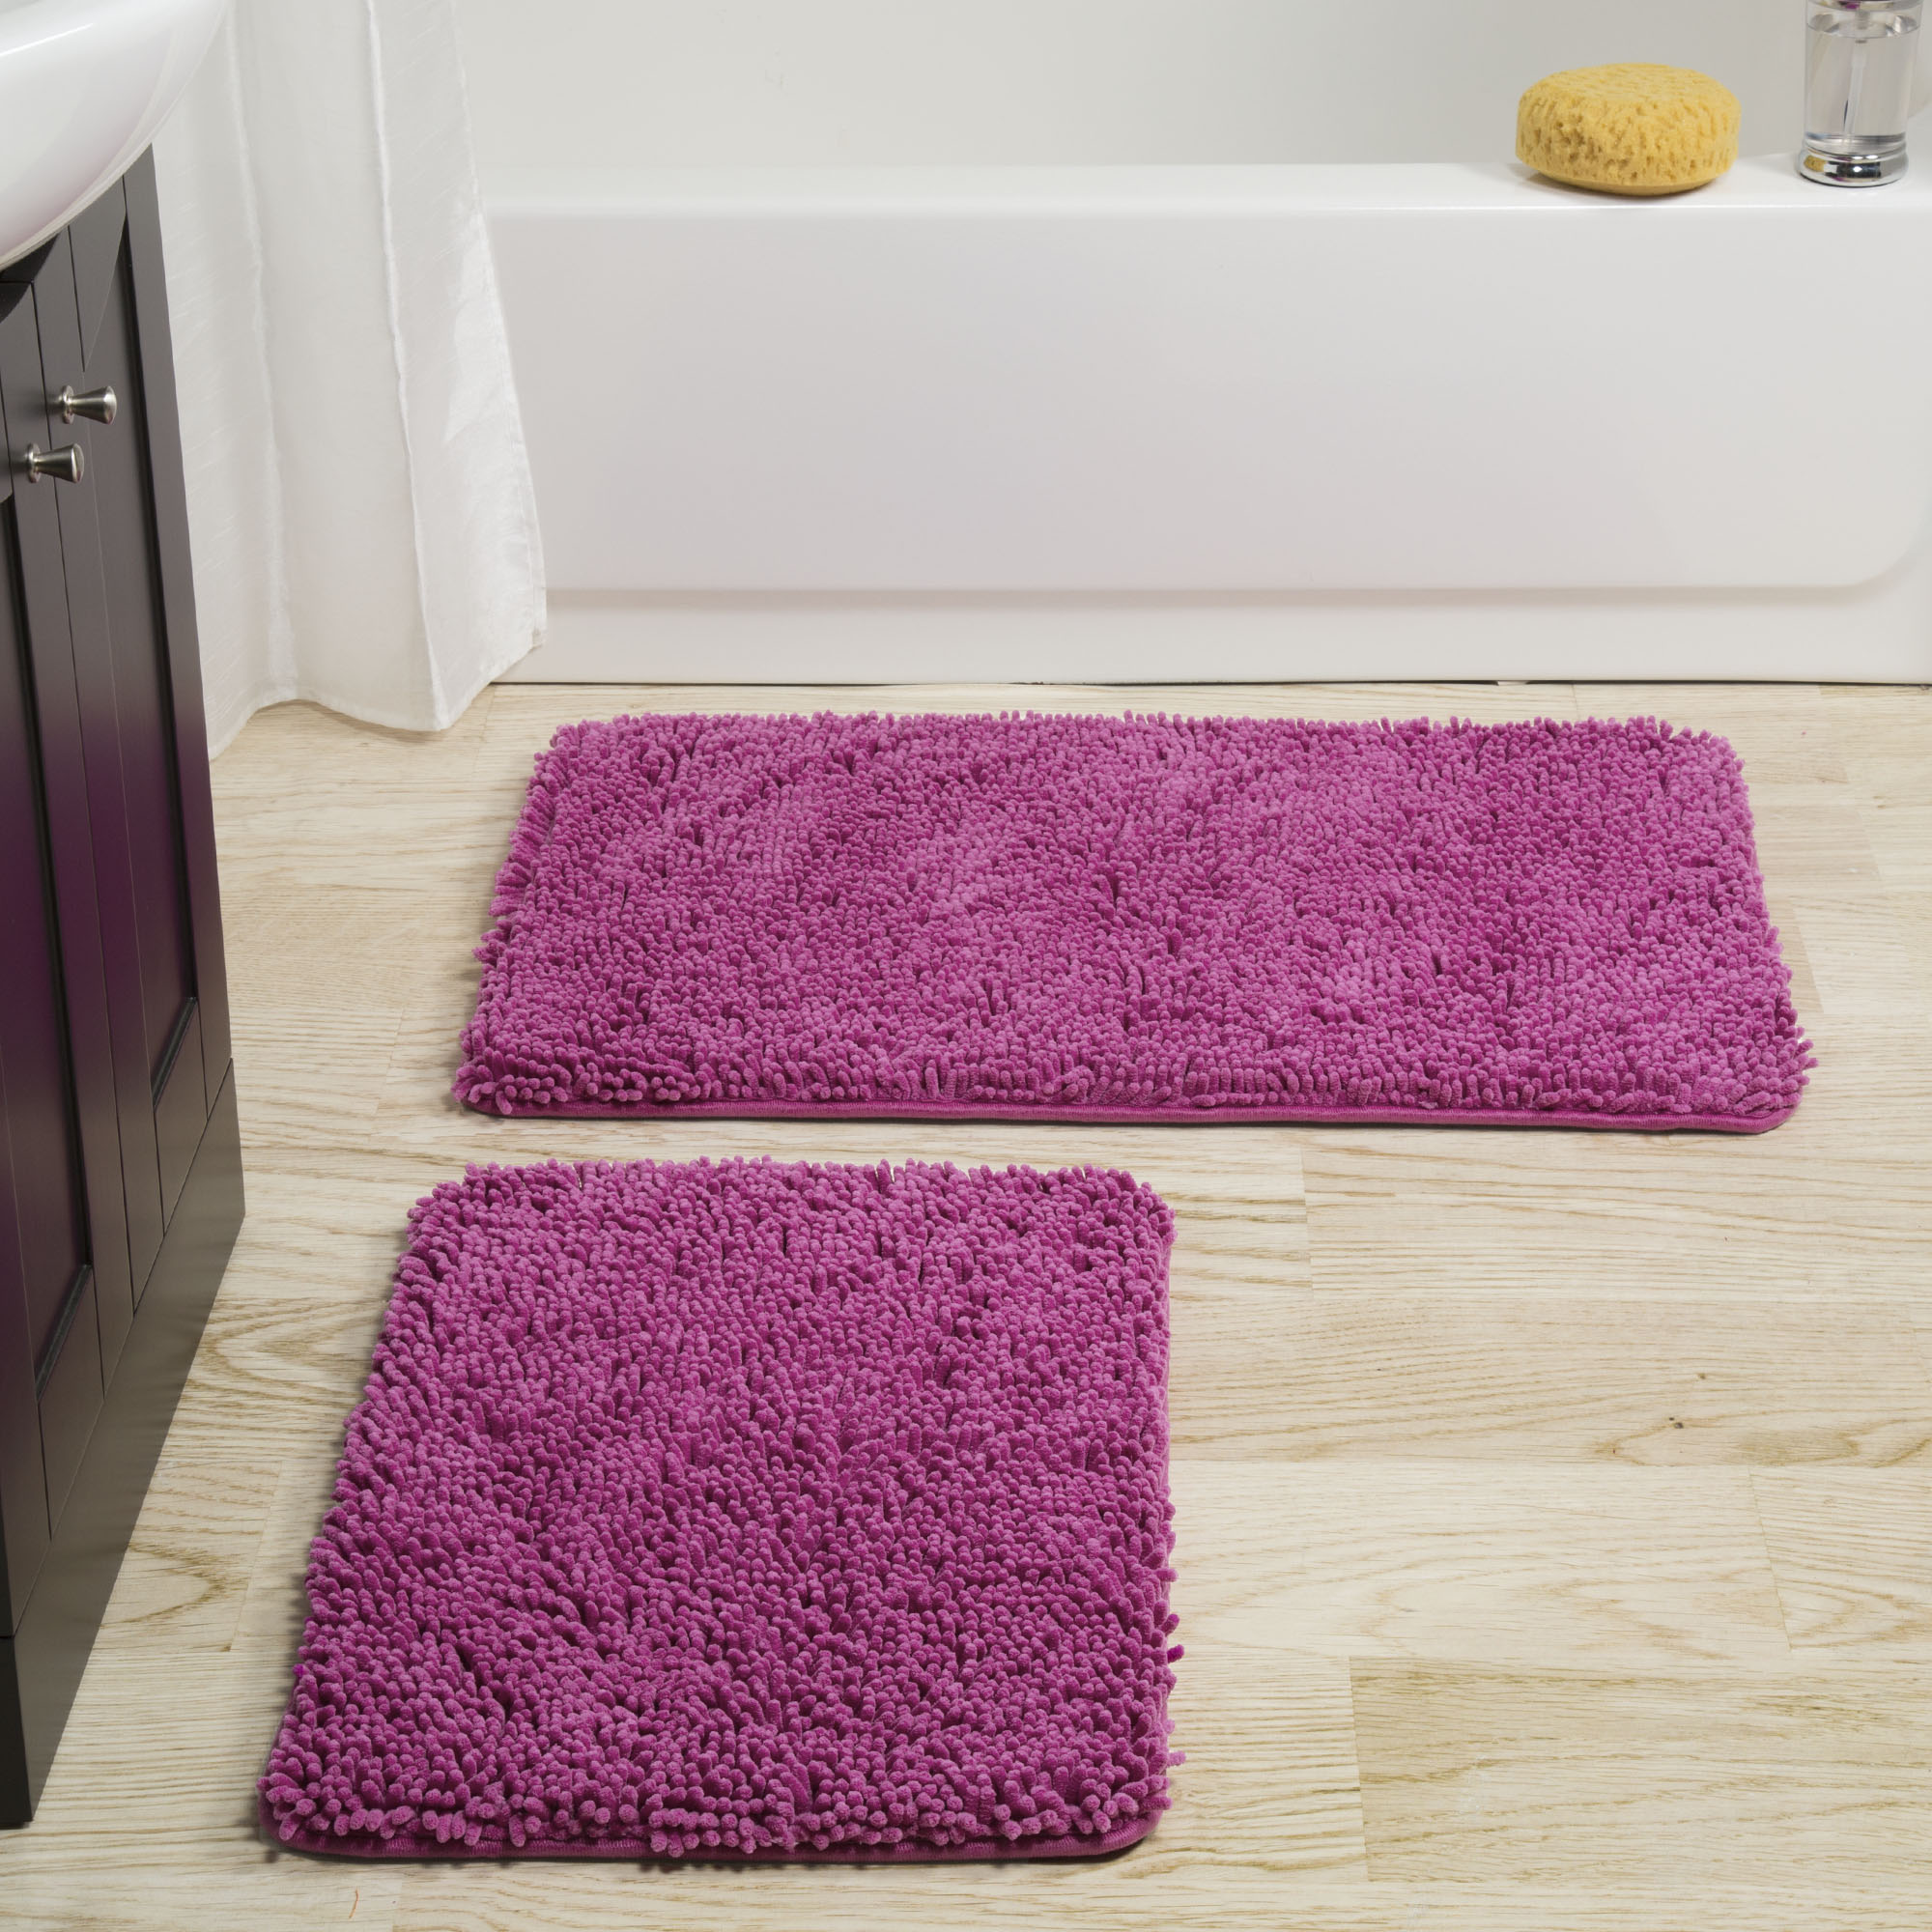 Lavish Home 2 Piece Memory Foam Shag Bath Mat - Pink